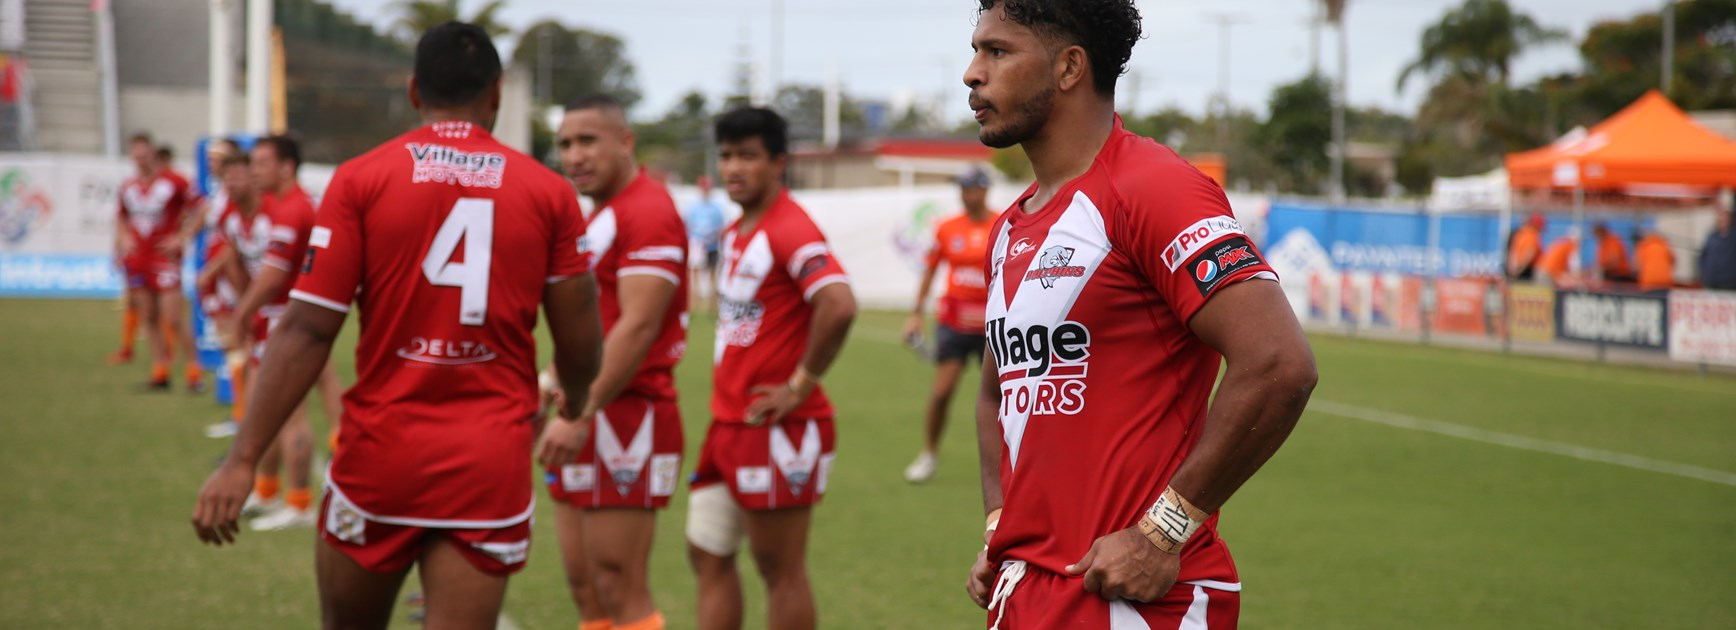 Last-placed Mackay level with Dolphins in 1st draw of season